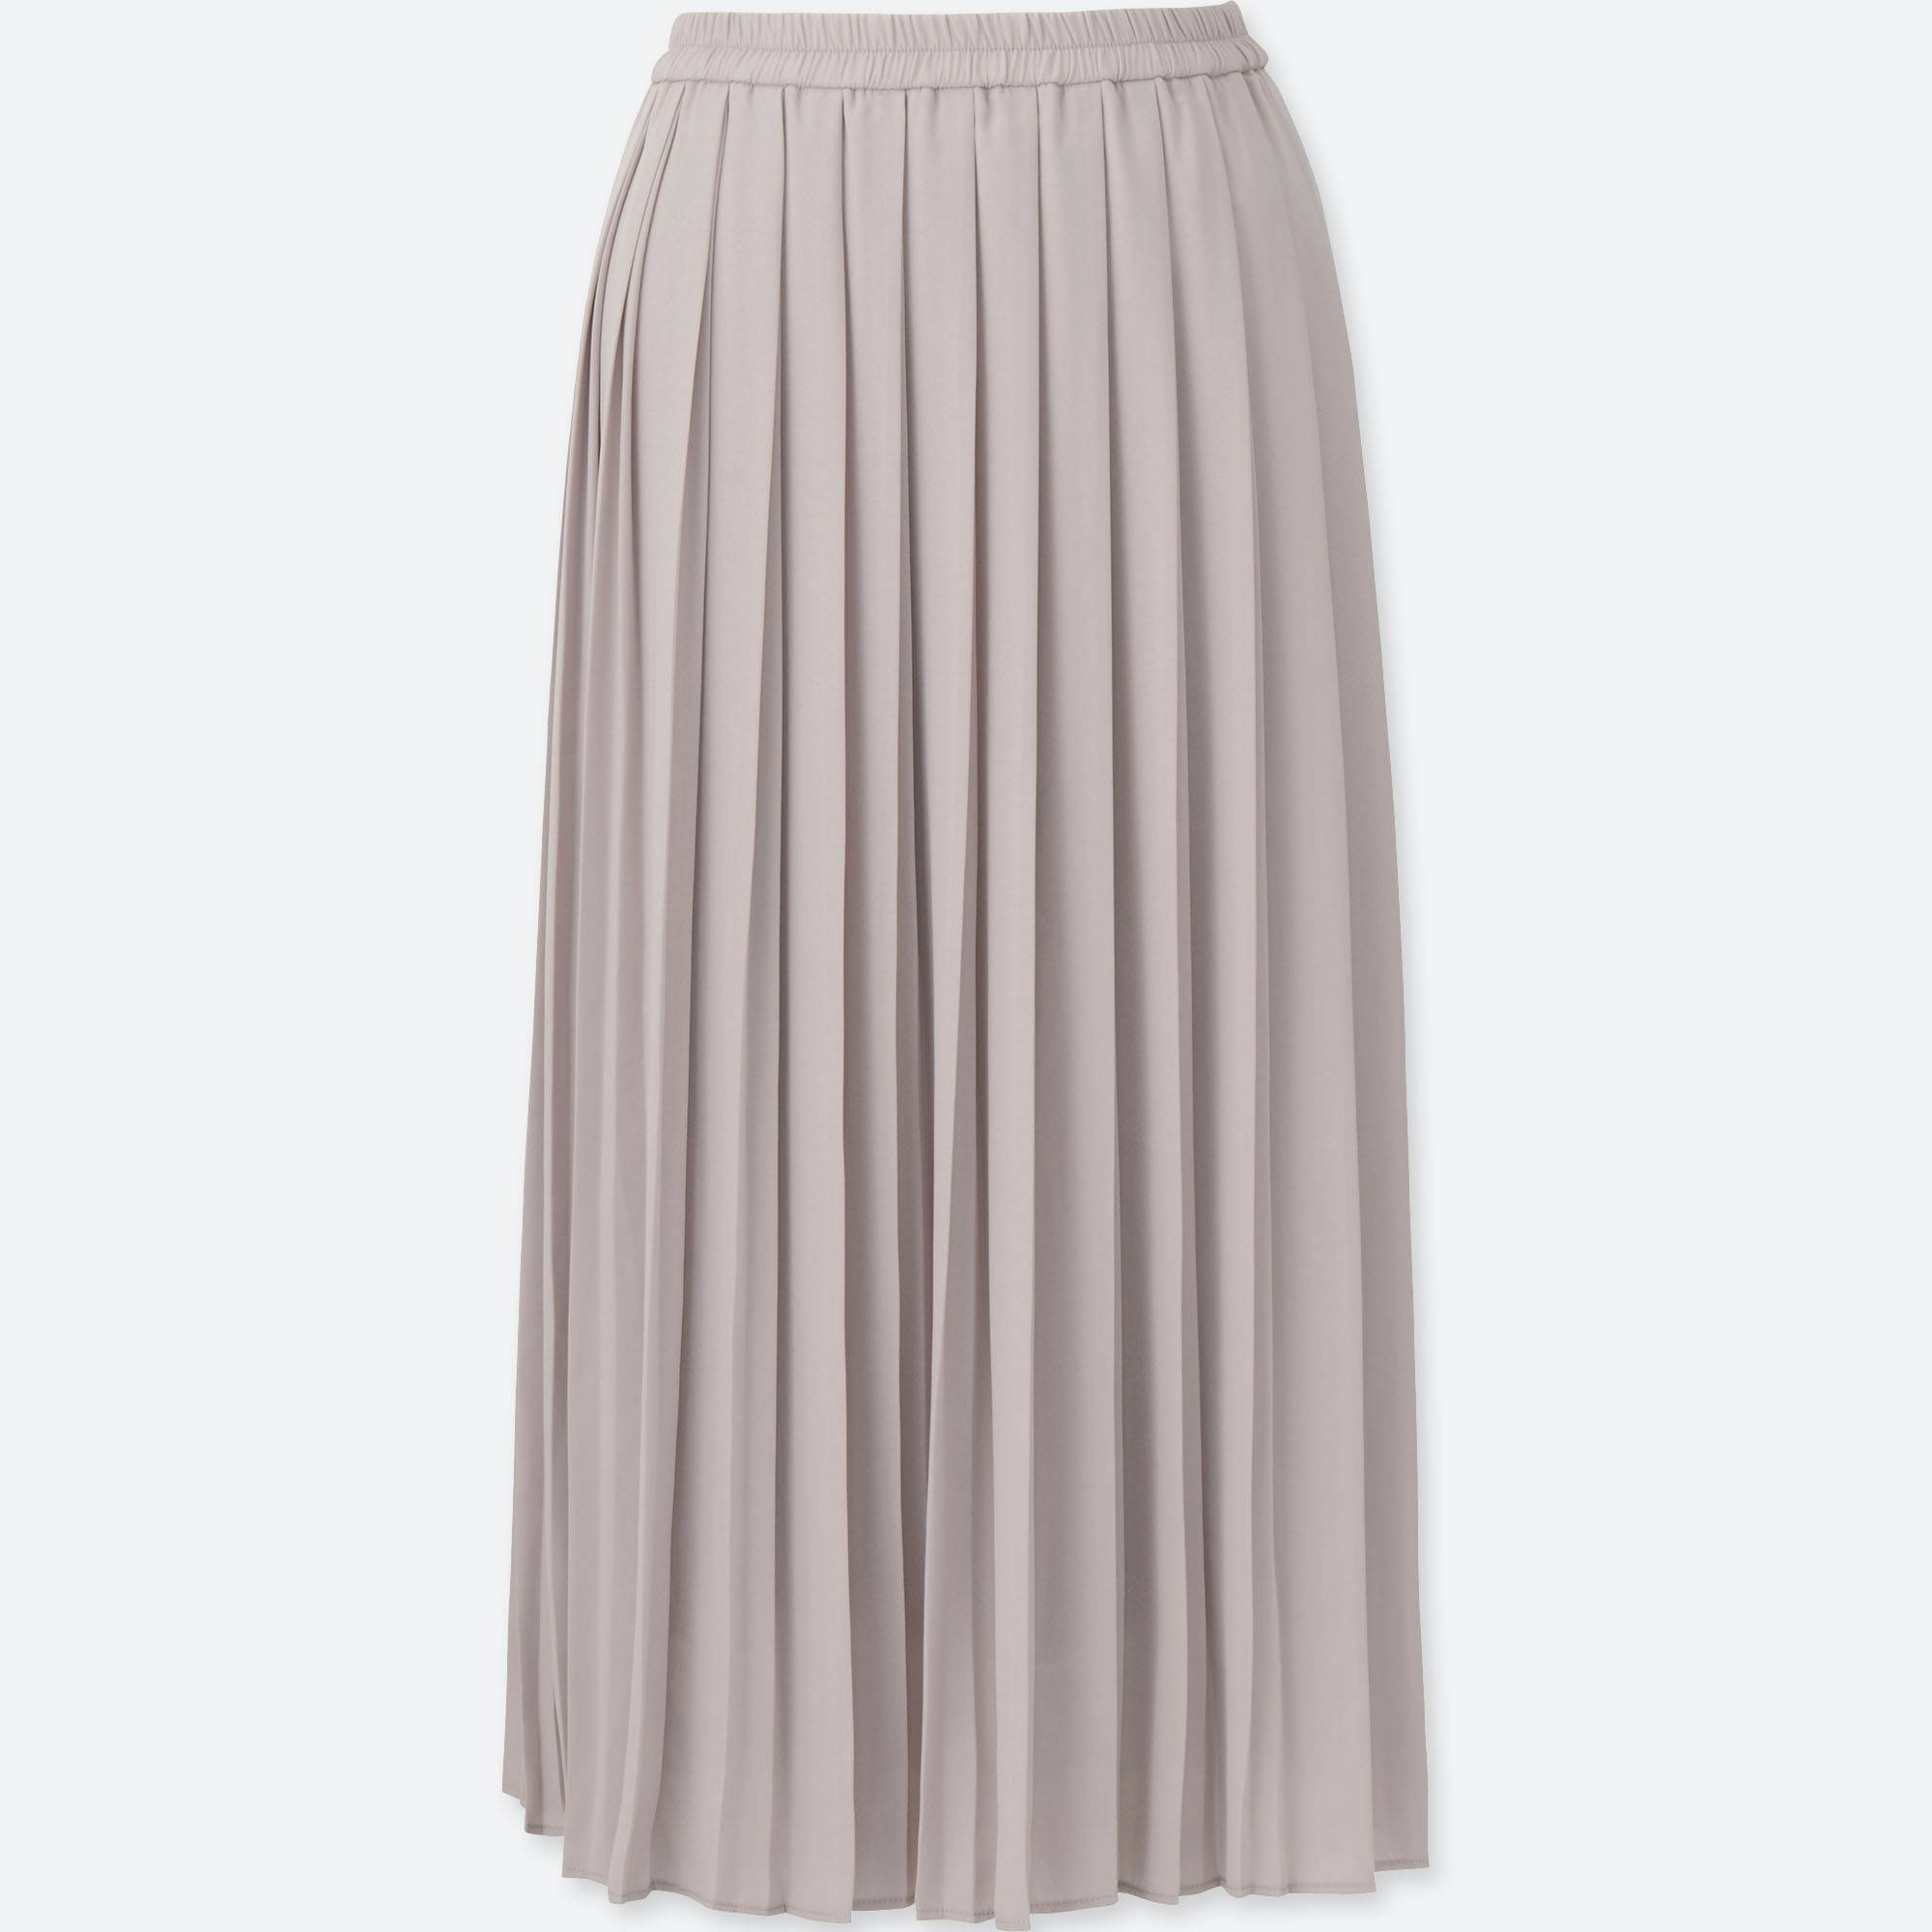 pleated skirt this review is fromwomen high waist chiffon pleated midi skirt. utcvcqu